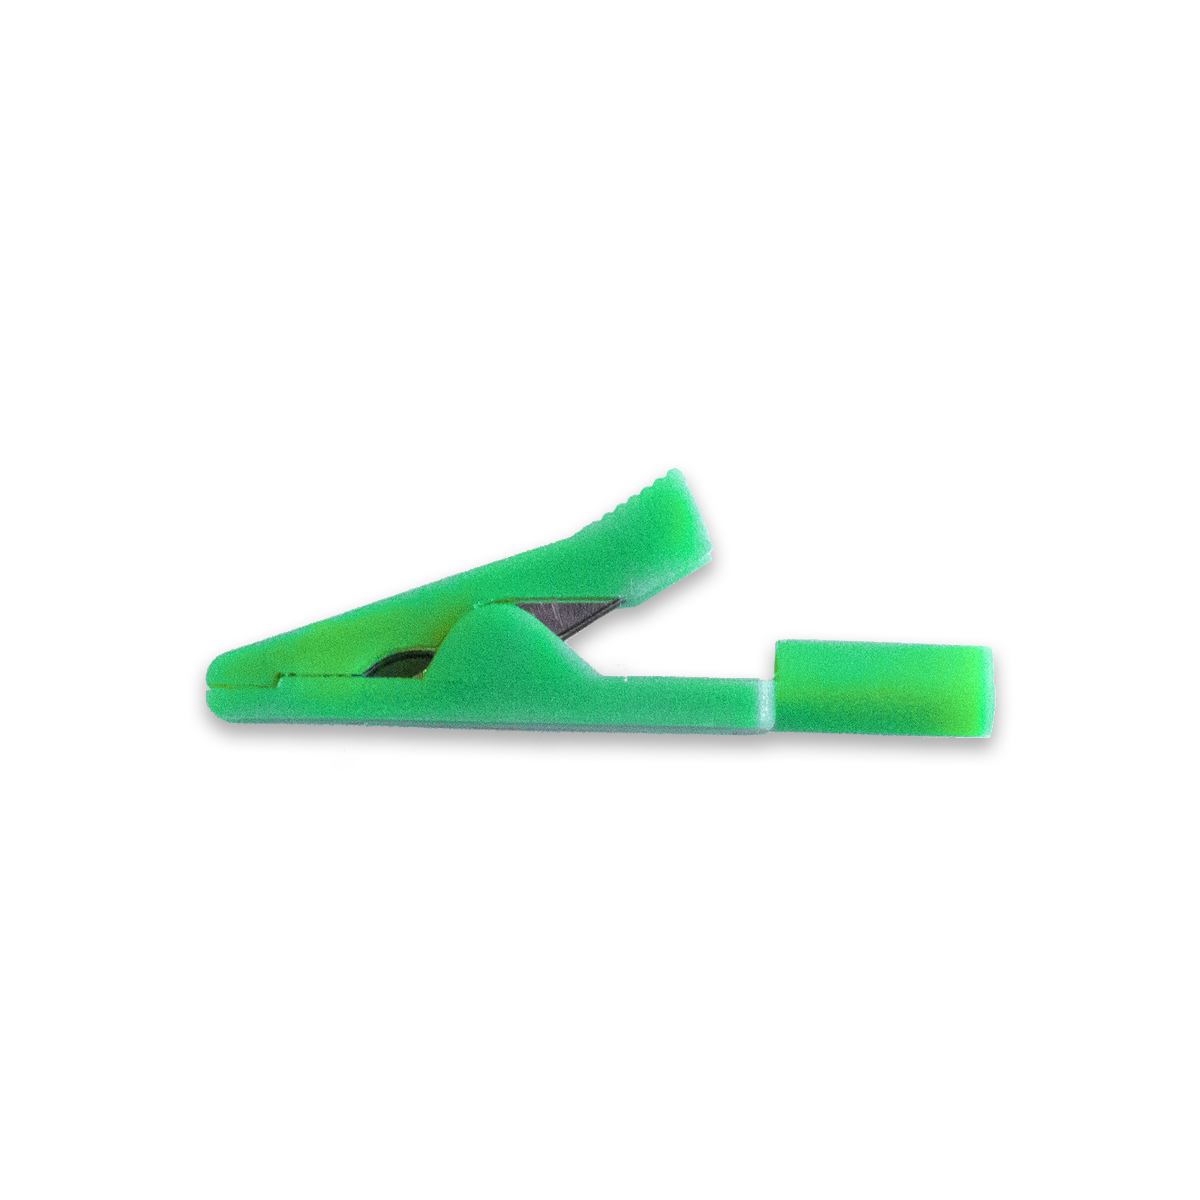 Miniature Insulated Alligator Clip